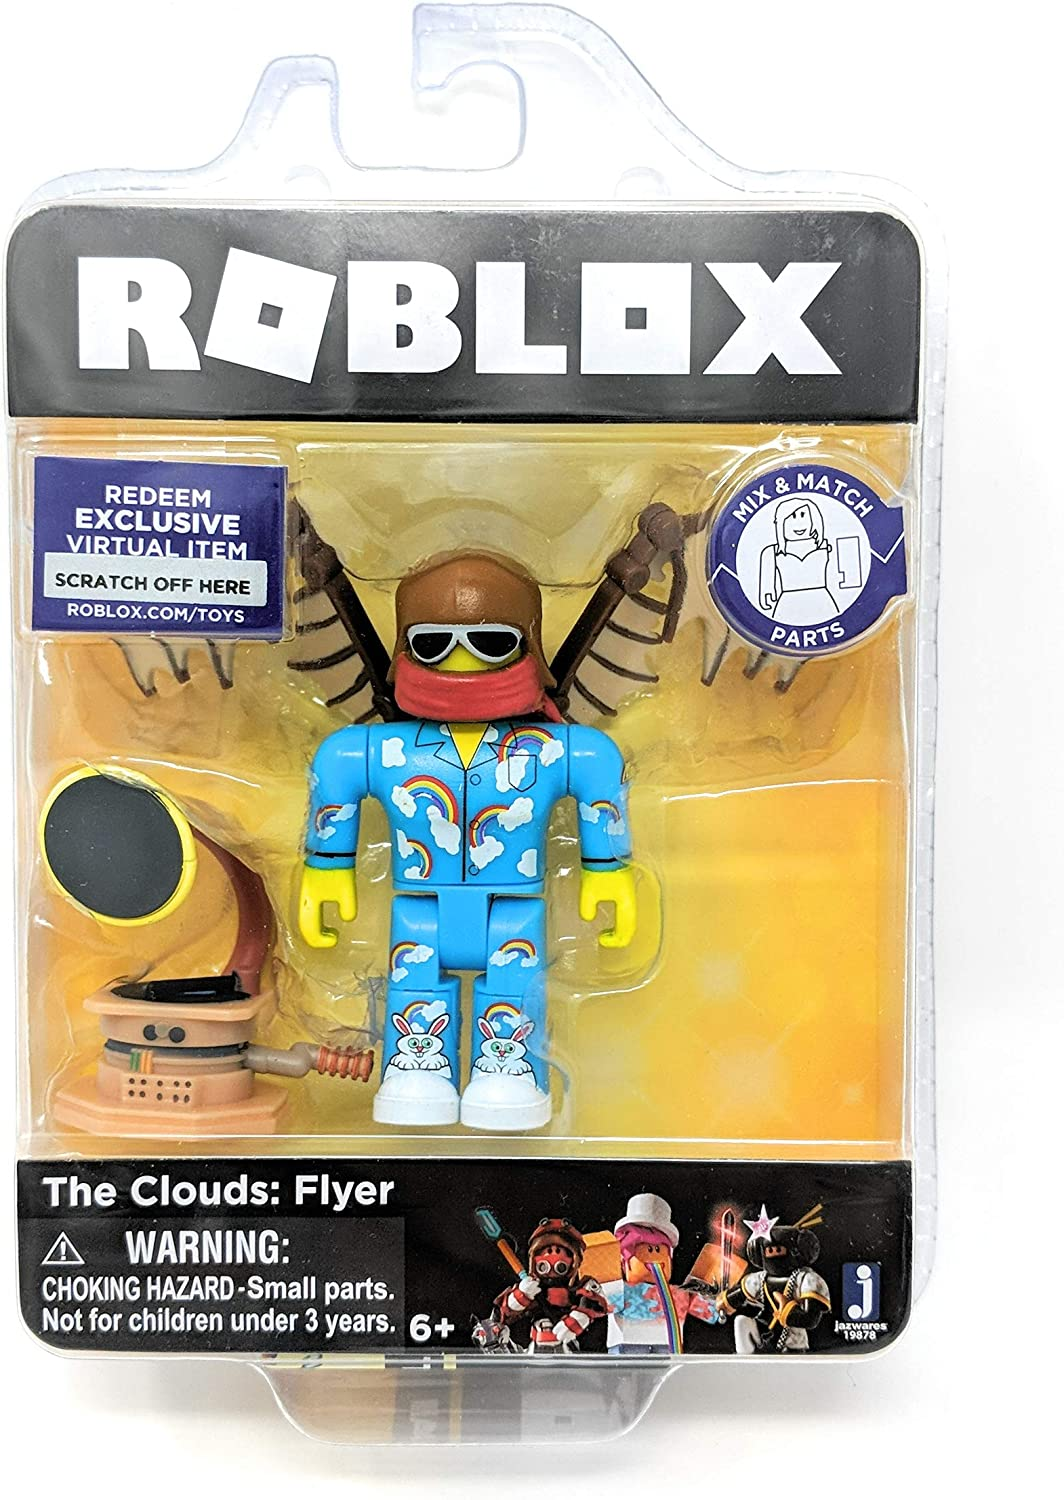 City Of London United Kingdom Roblox Amazon Com Roblox Gold Collection The Clouds Flyer Single Figure Pack With Exclusive Virtual Item Code Toys Games